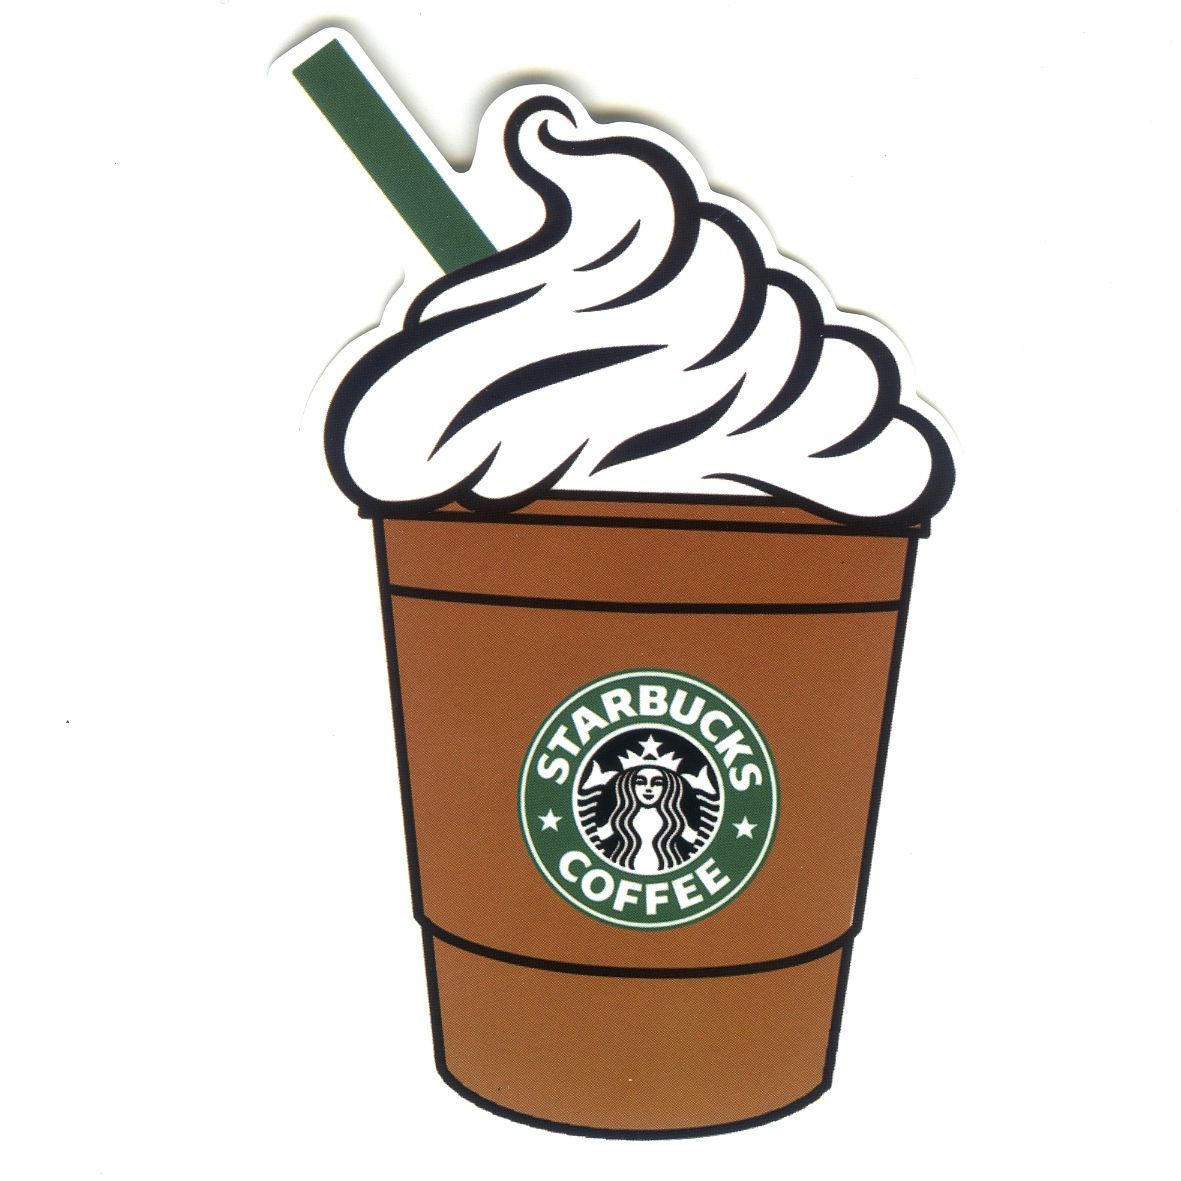 1320 Starbucks Coffee Cappuccino Height 9 Cm Decal Sticker